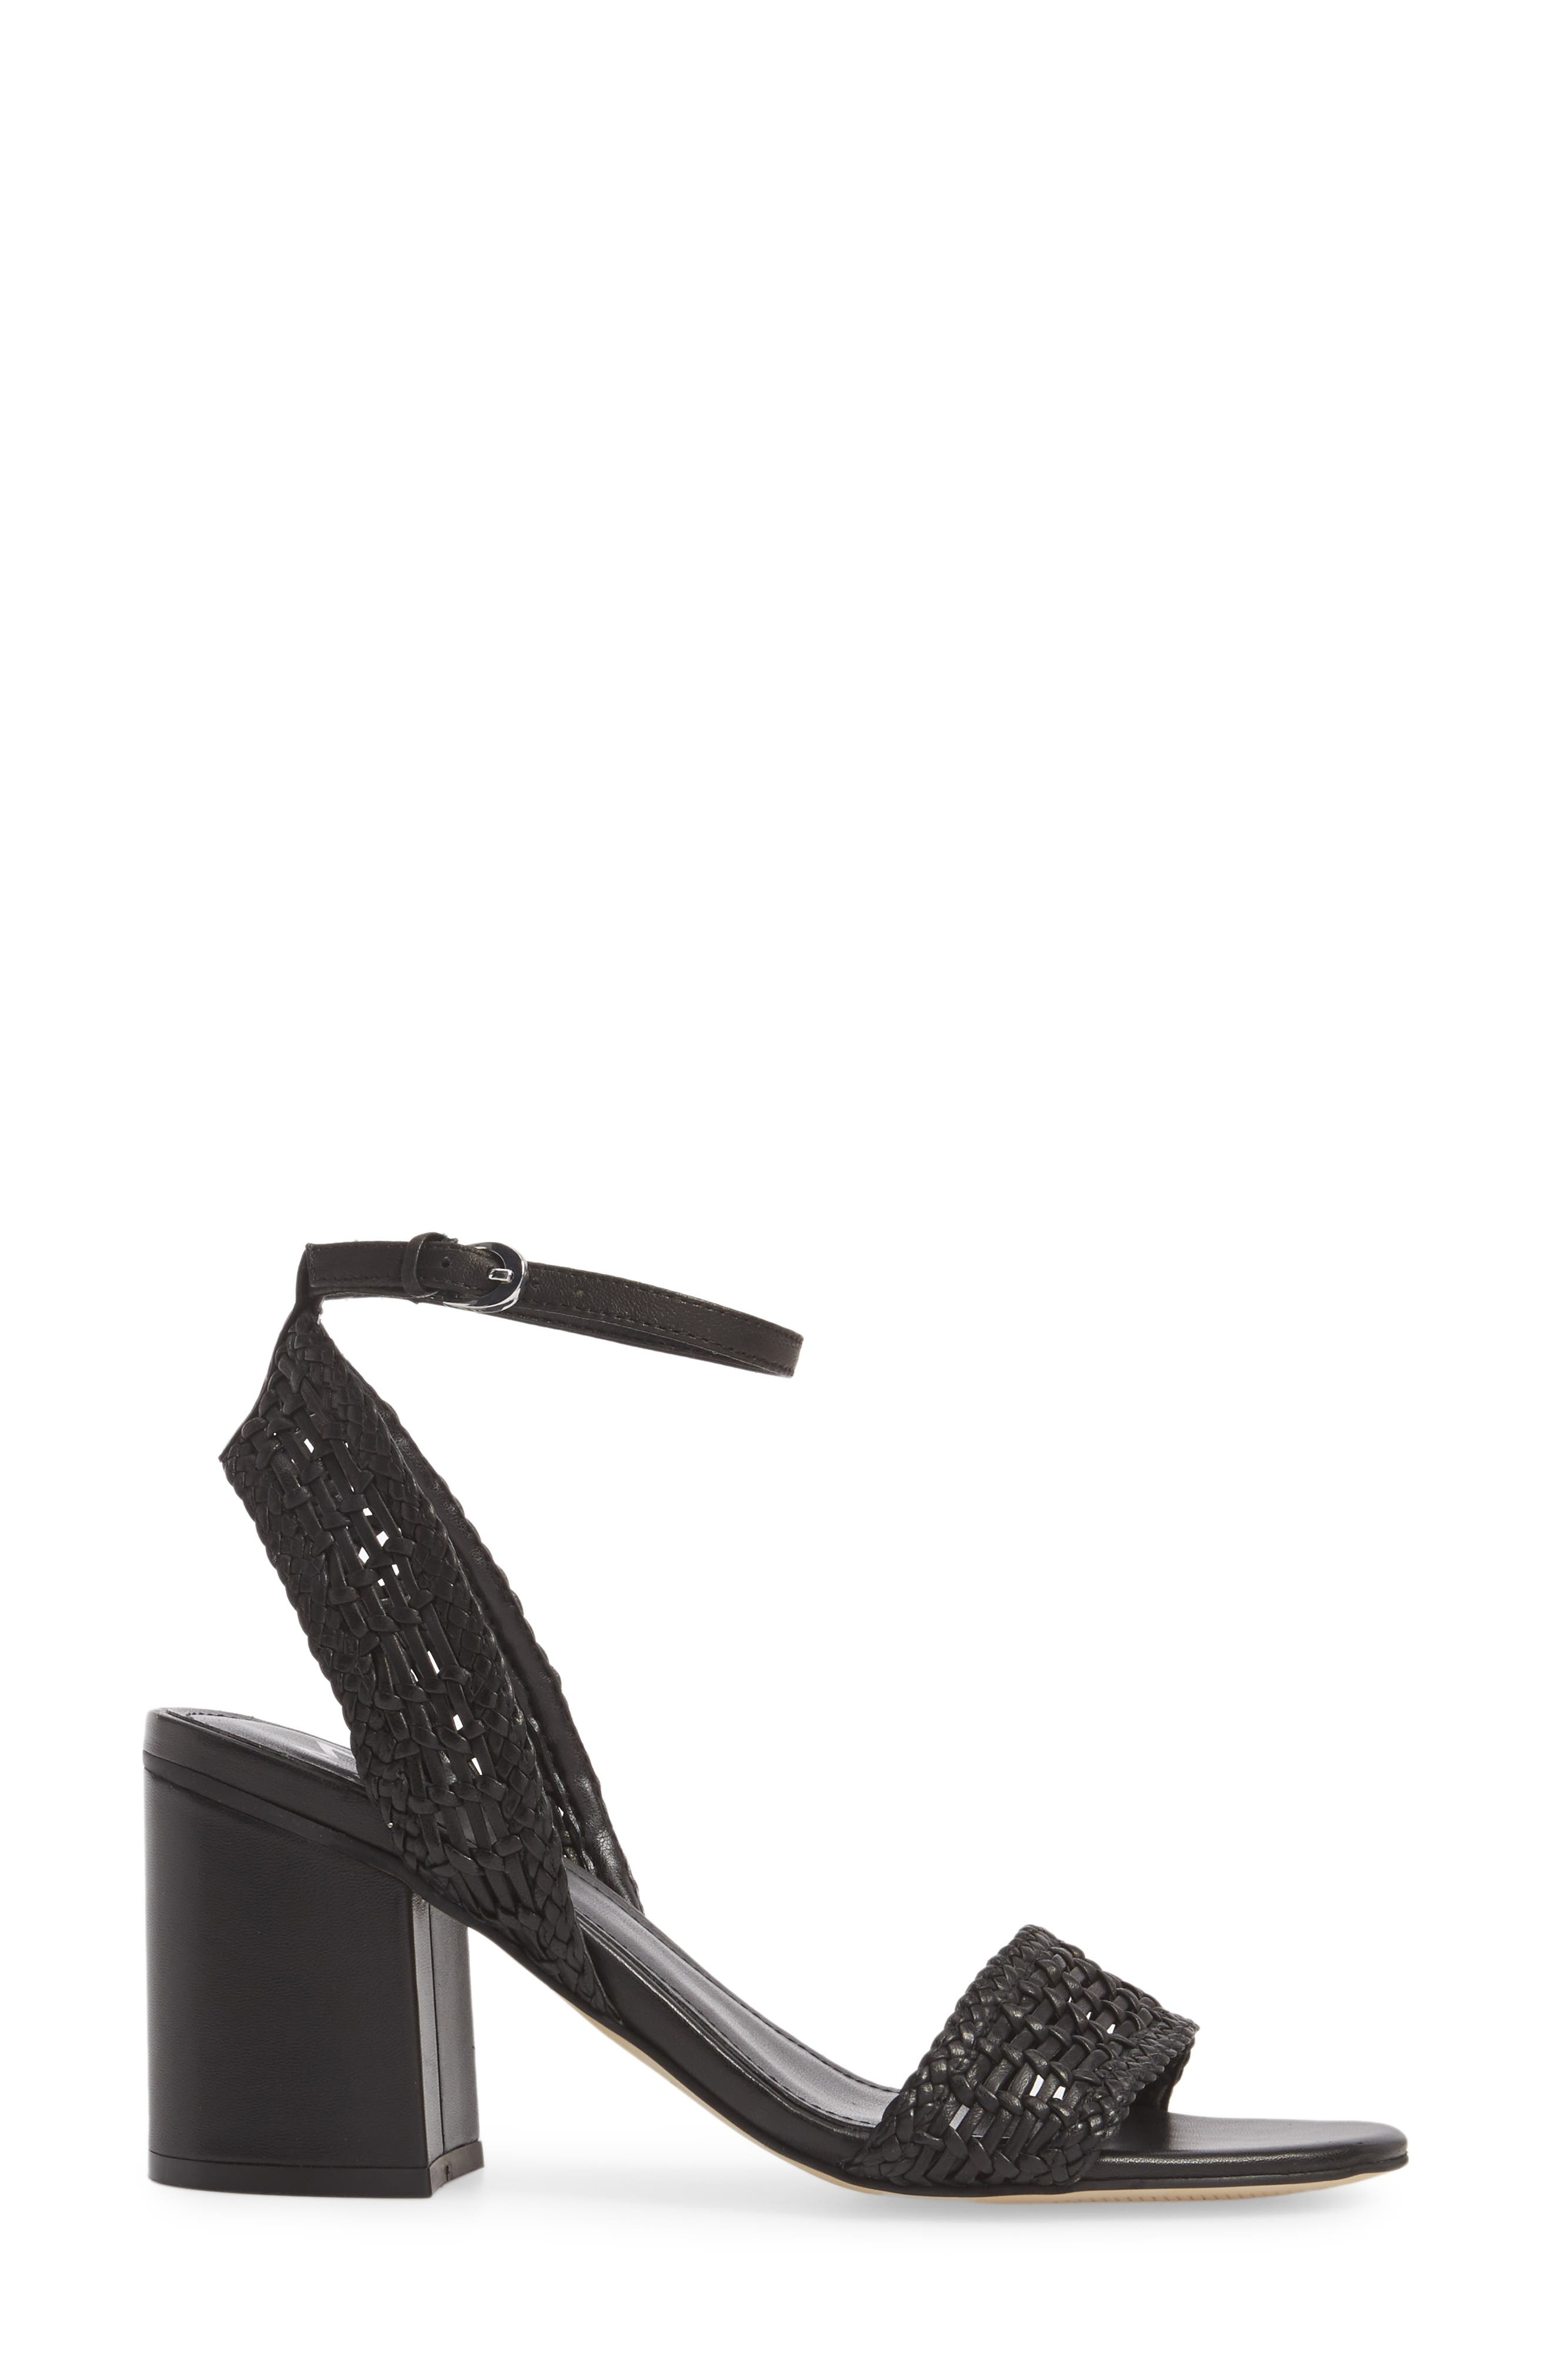 Amere Ankle Strap Sandal,                             Alternate thumbnail 3, color,                             001